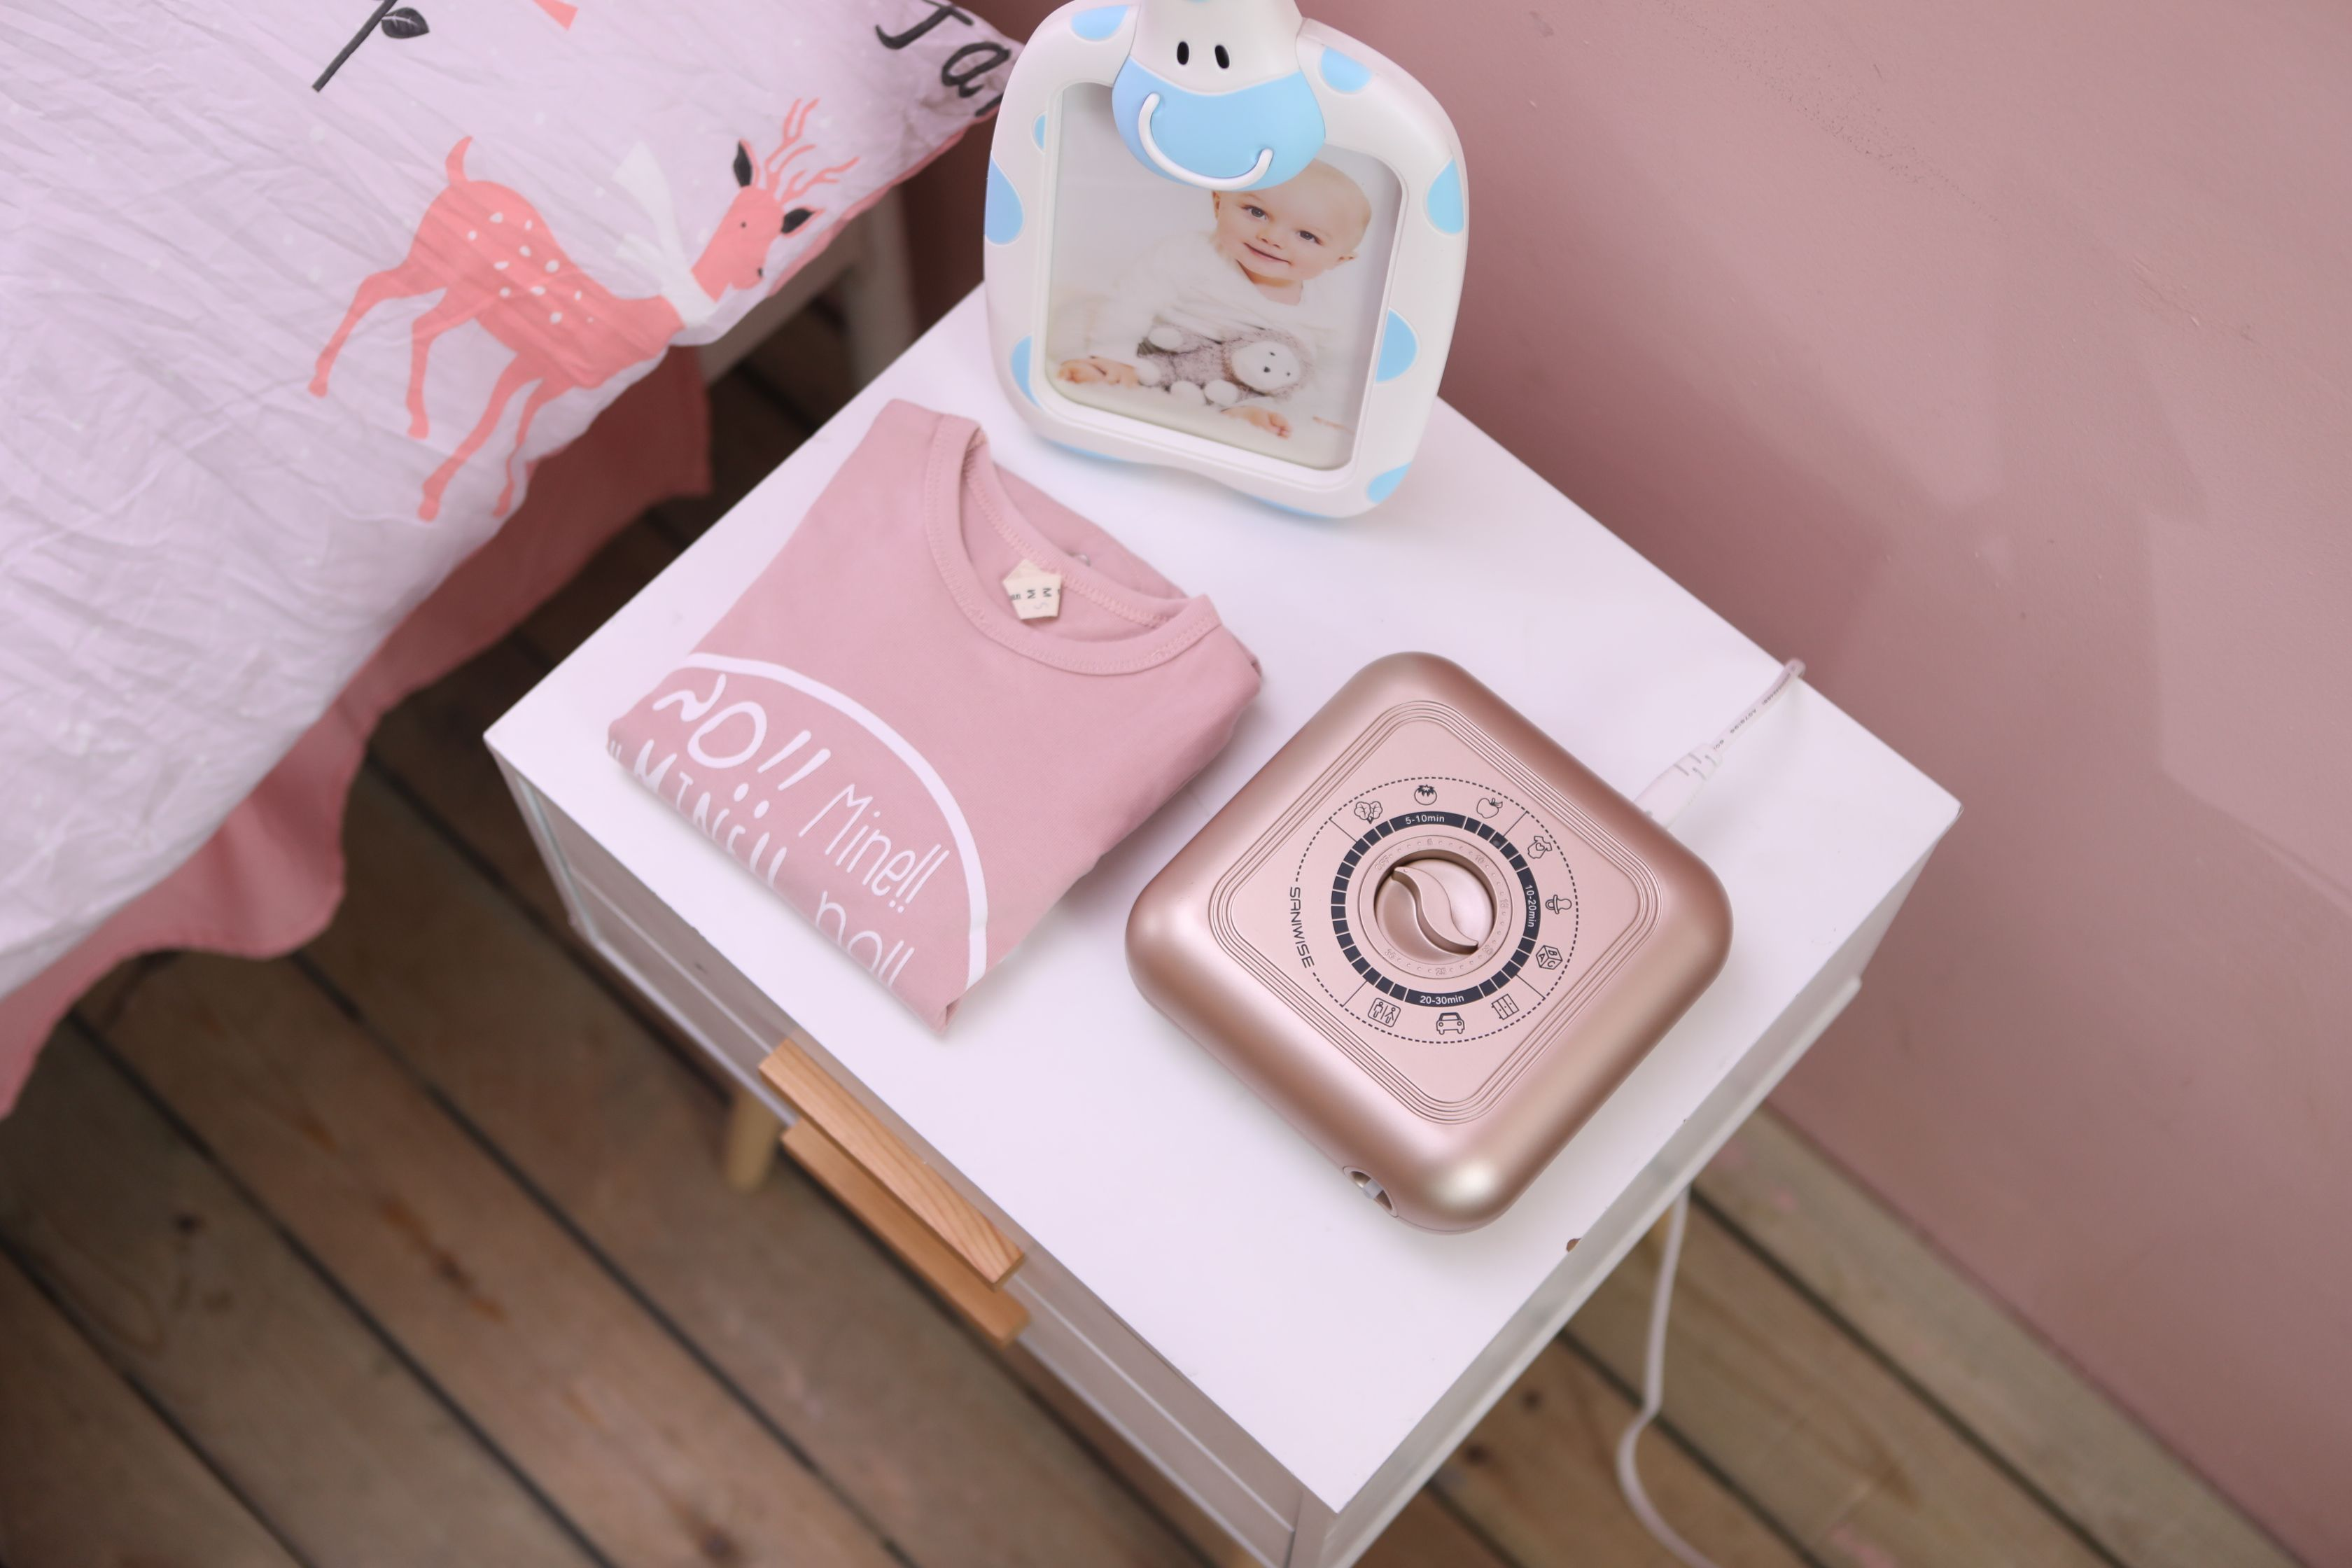 Rose gold version of Saniwise air purifier. It can